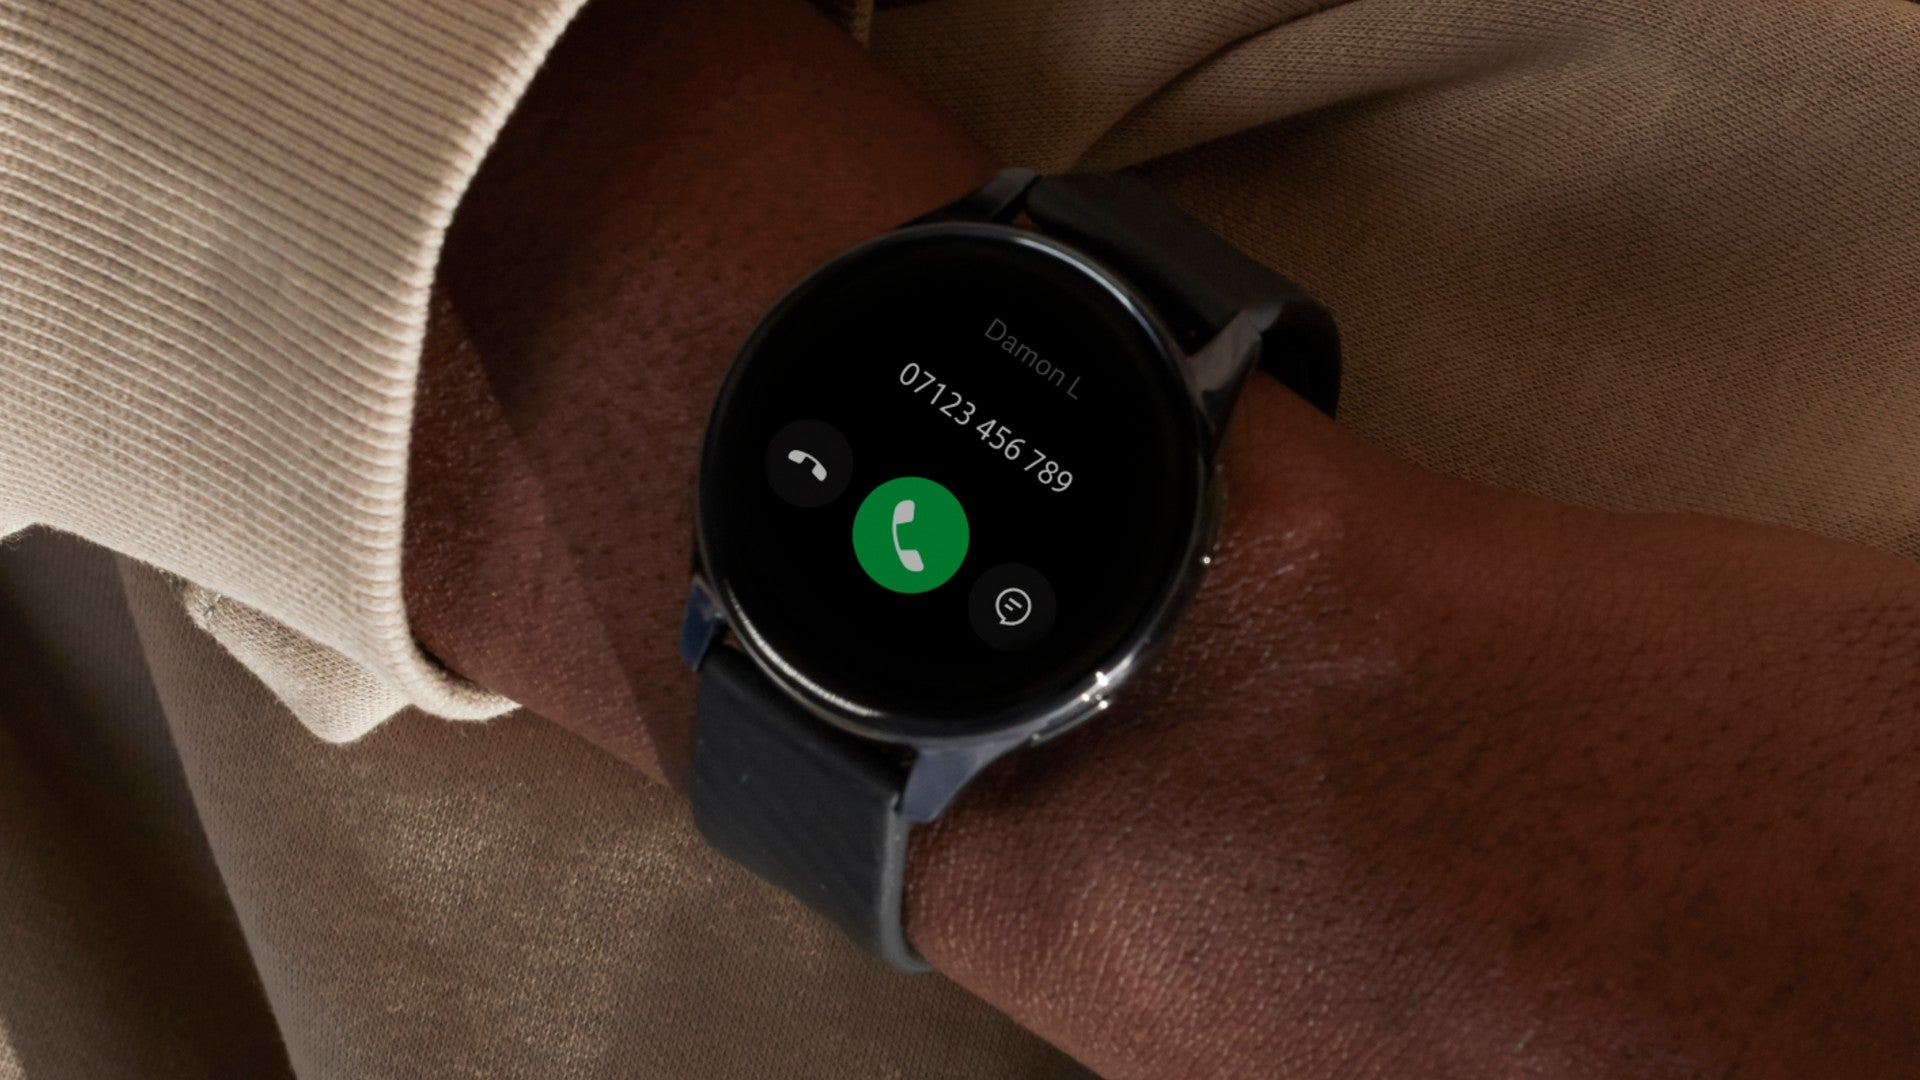 Ditching Wear OS is the right call for the OnePlus Watch